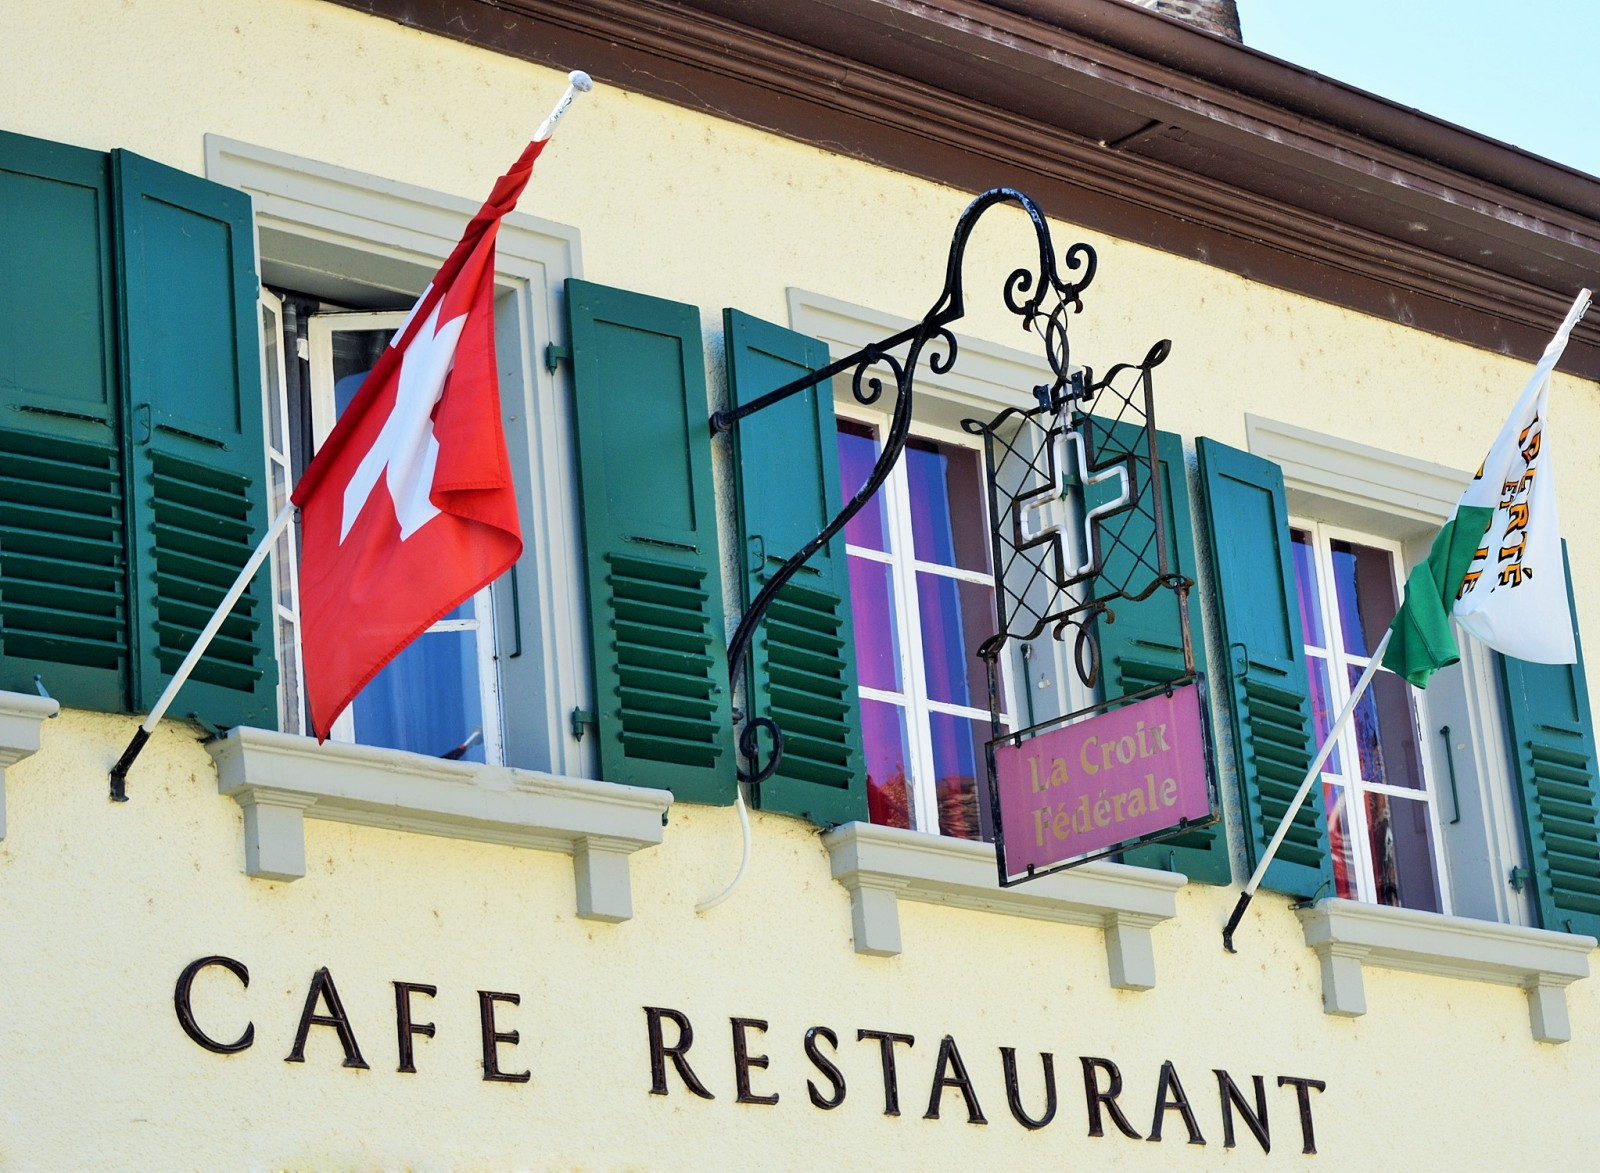 Cafe restaurant traditionnel rolle